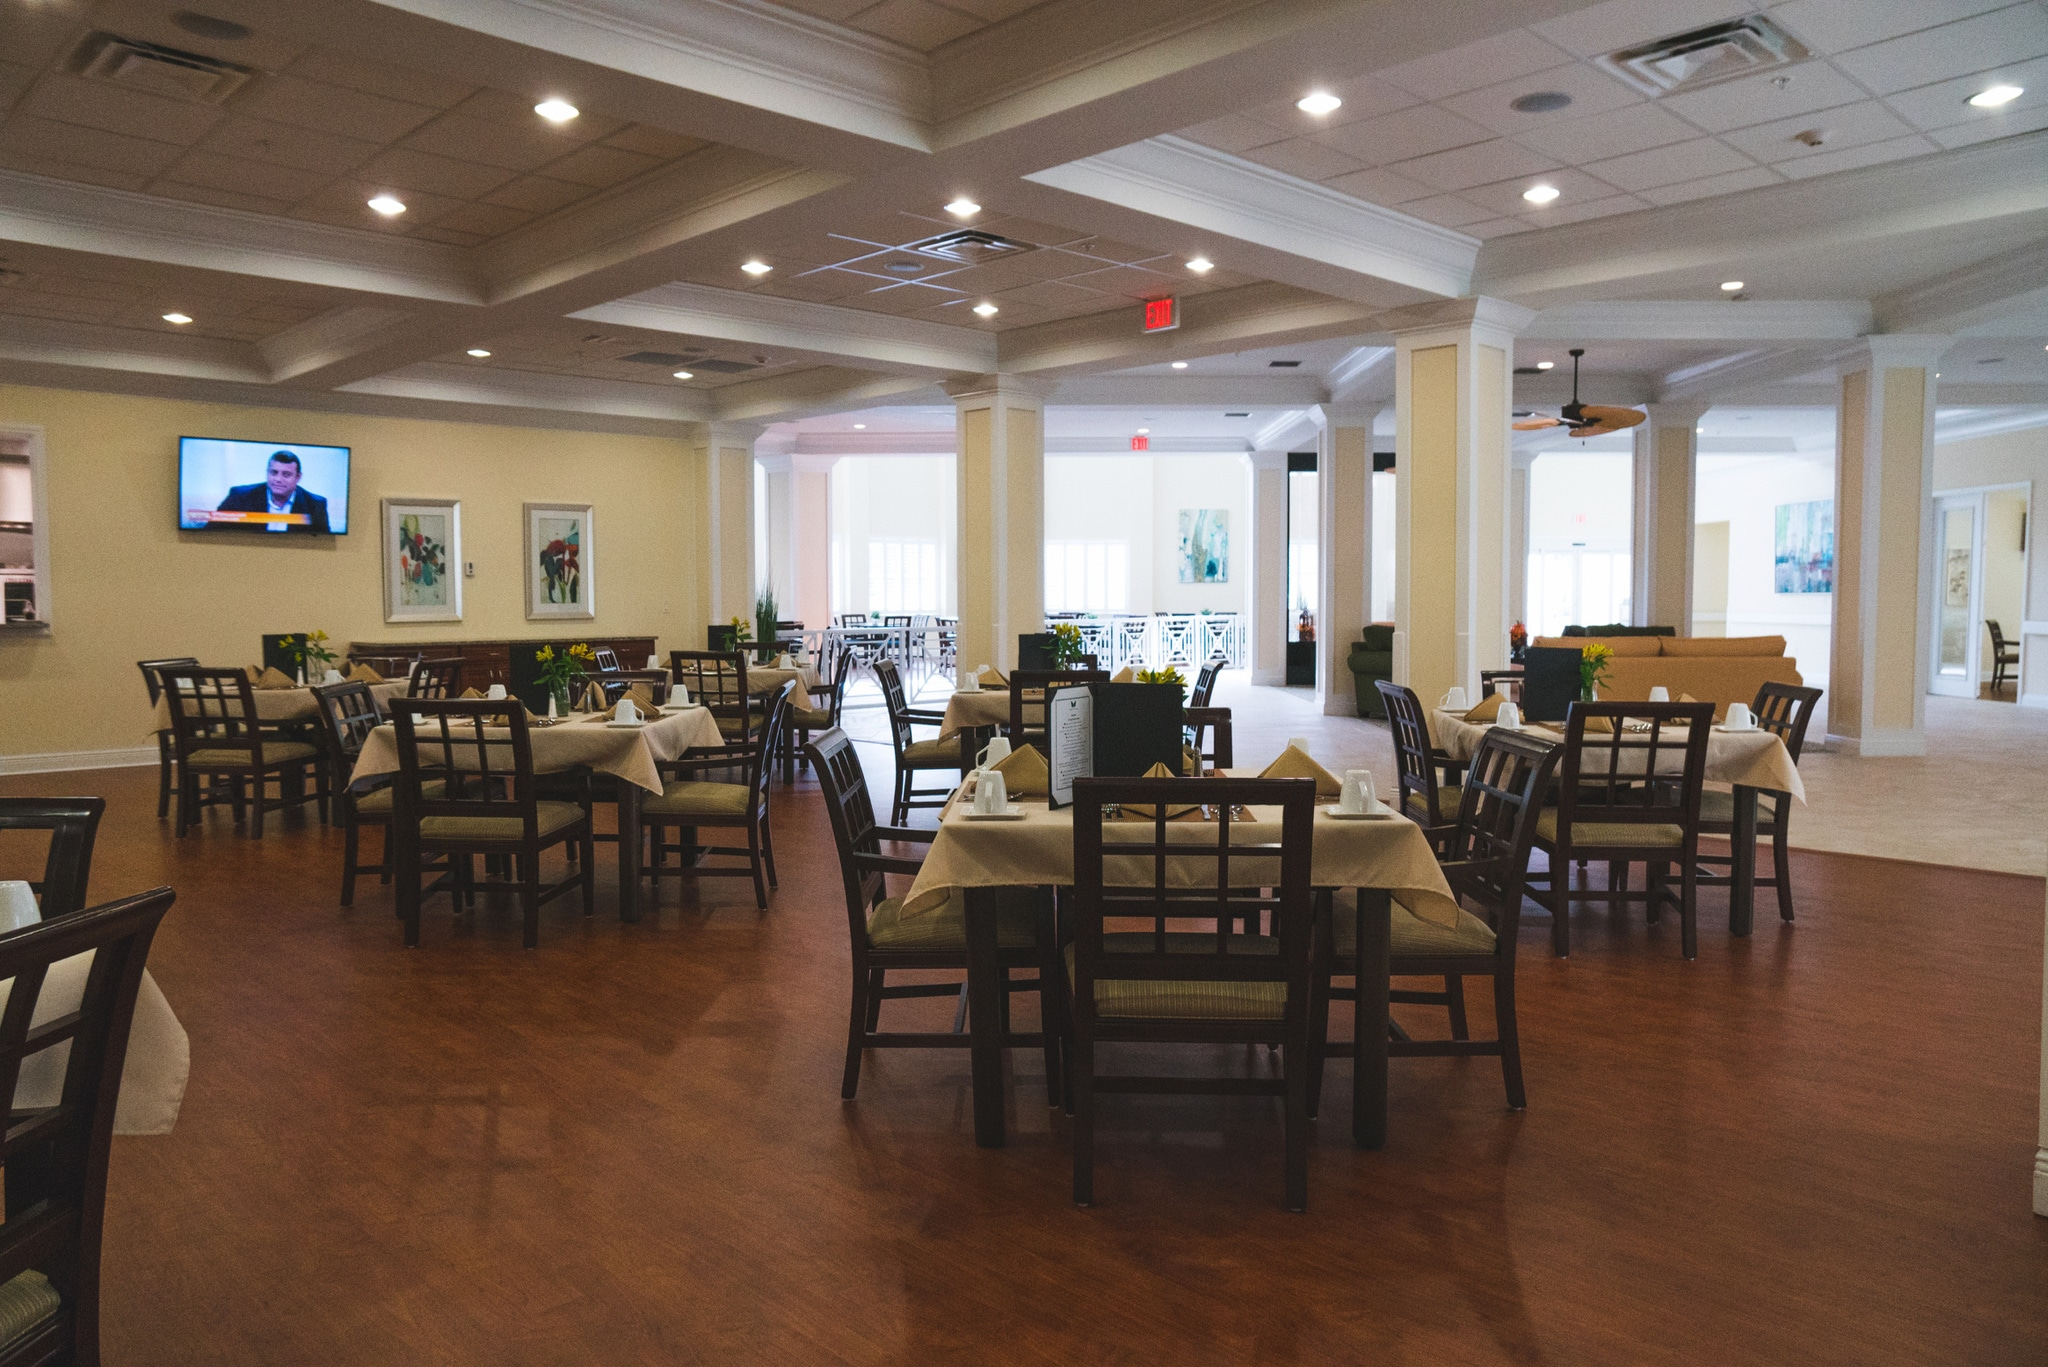 Our dining area offers residents a chance to enjoy their dinners in a setting that blends the intimate with the community.